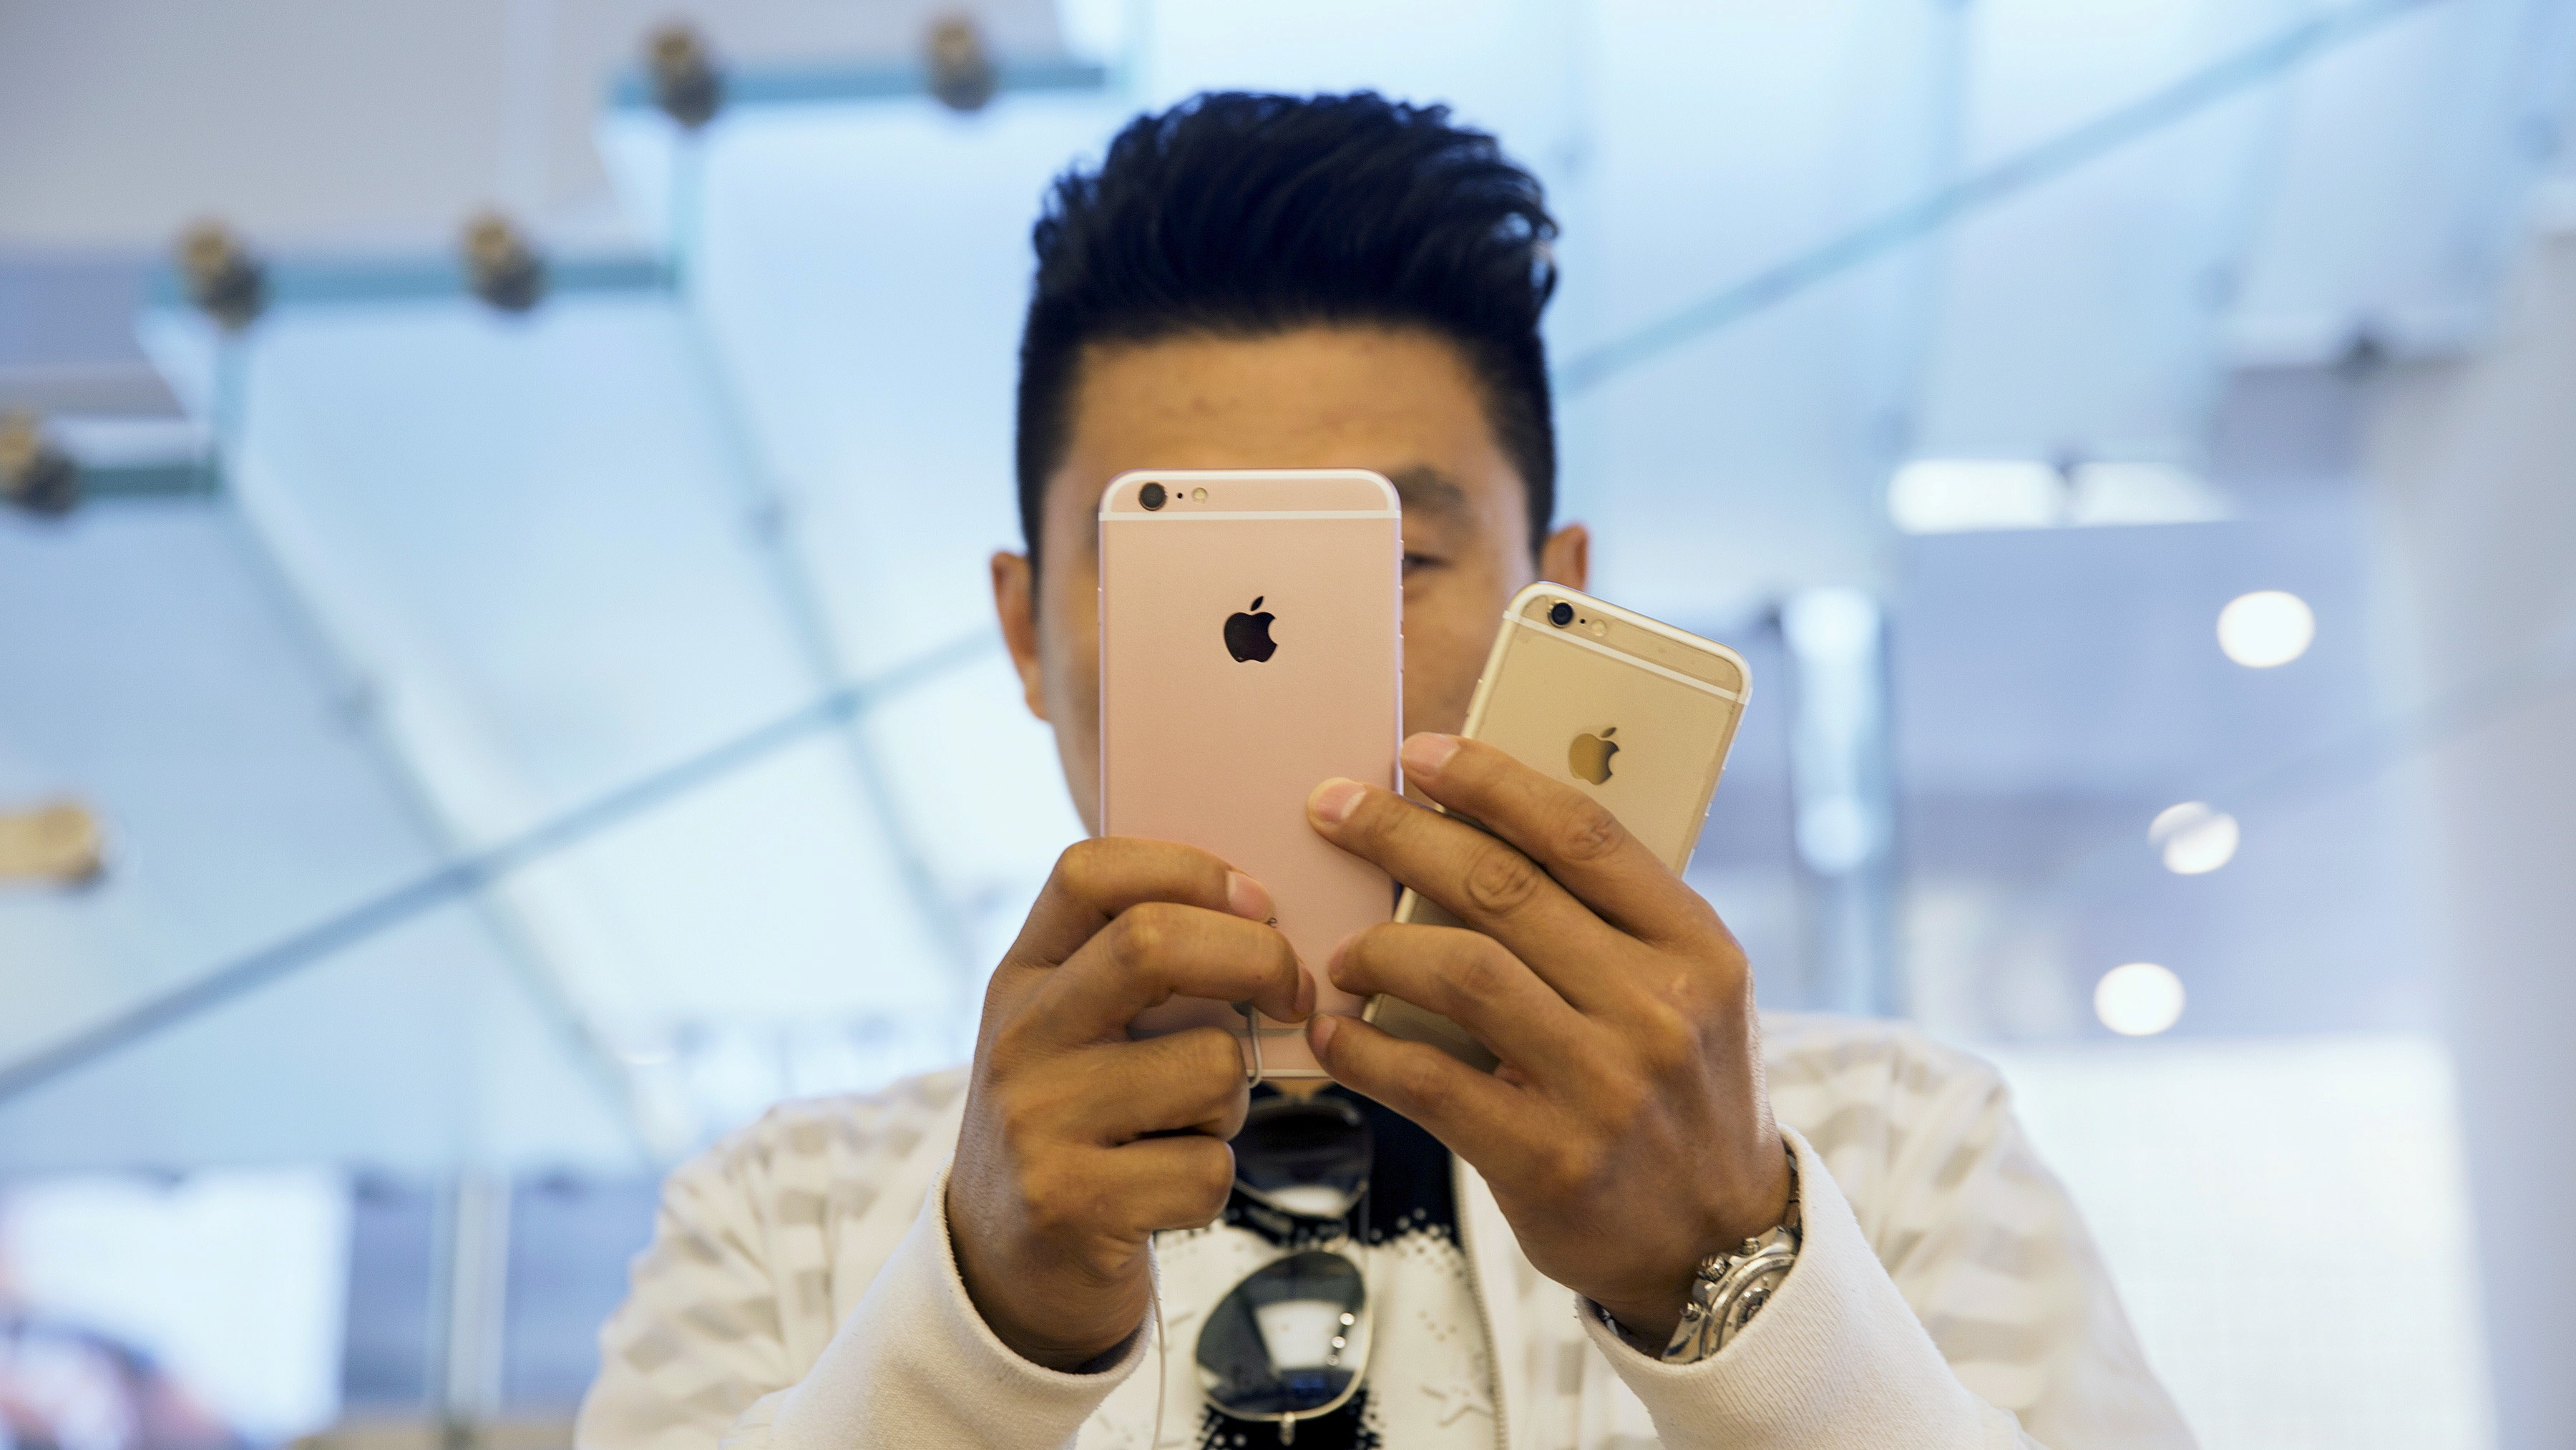 A man takes pictures as Apple iPhone 6s and 6s Plus go on sale at an Apple Store in Beijing, China September 25, 2015. REUTERS/Damir Sagolj/File Photo - RTSJD26